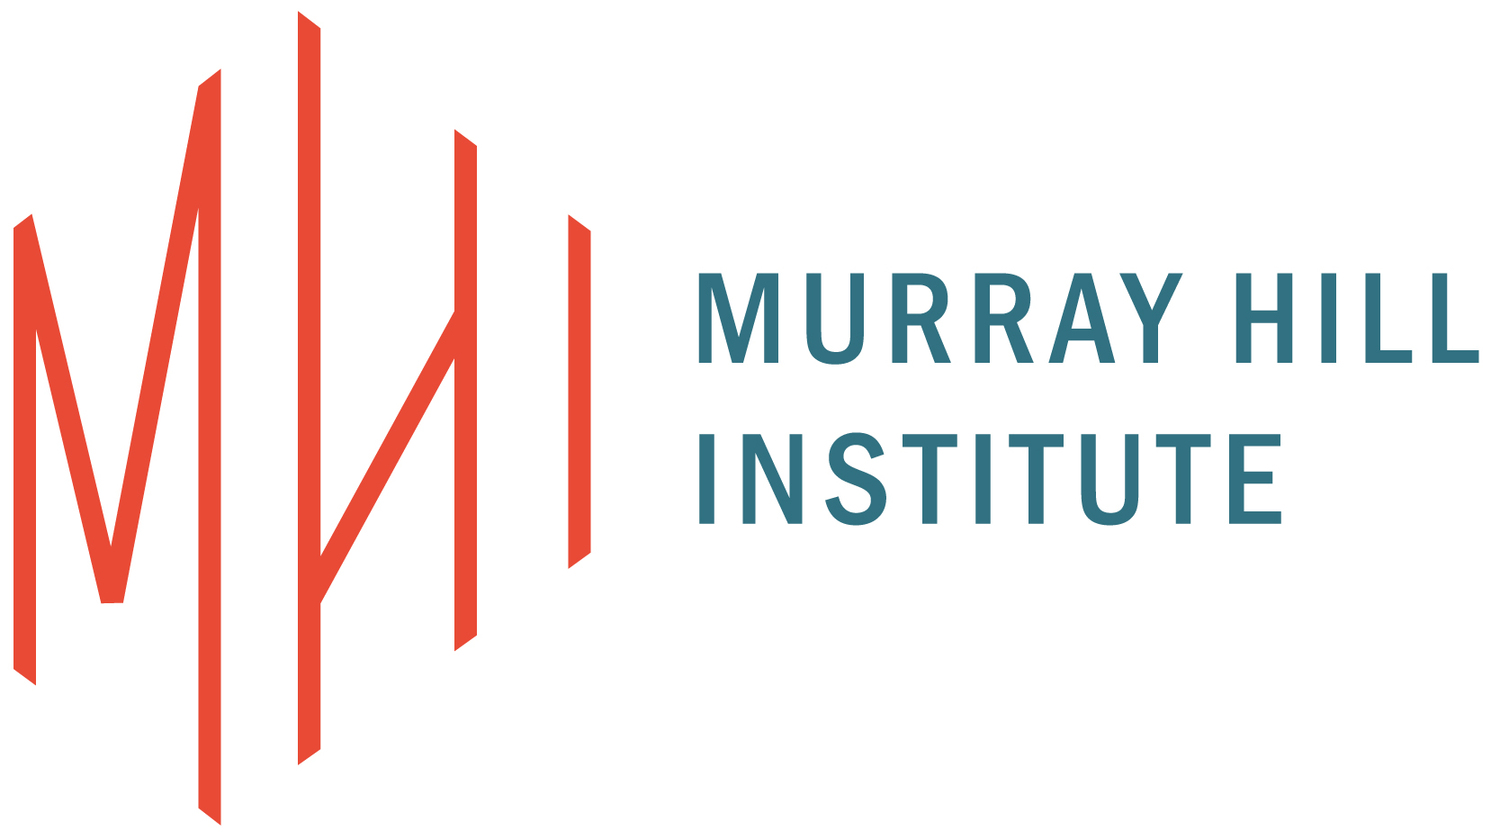 Murray Hill Institute